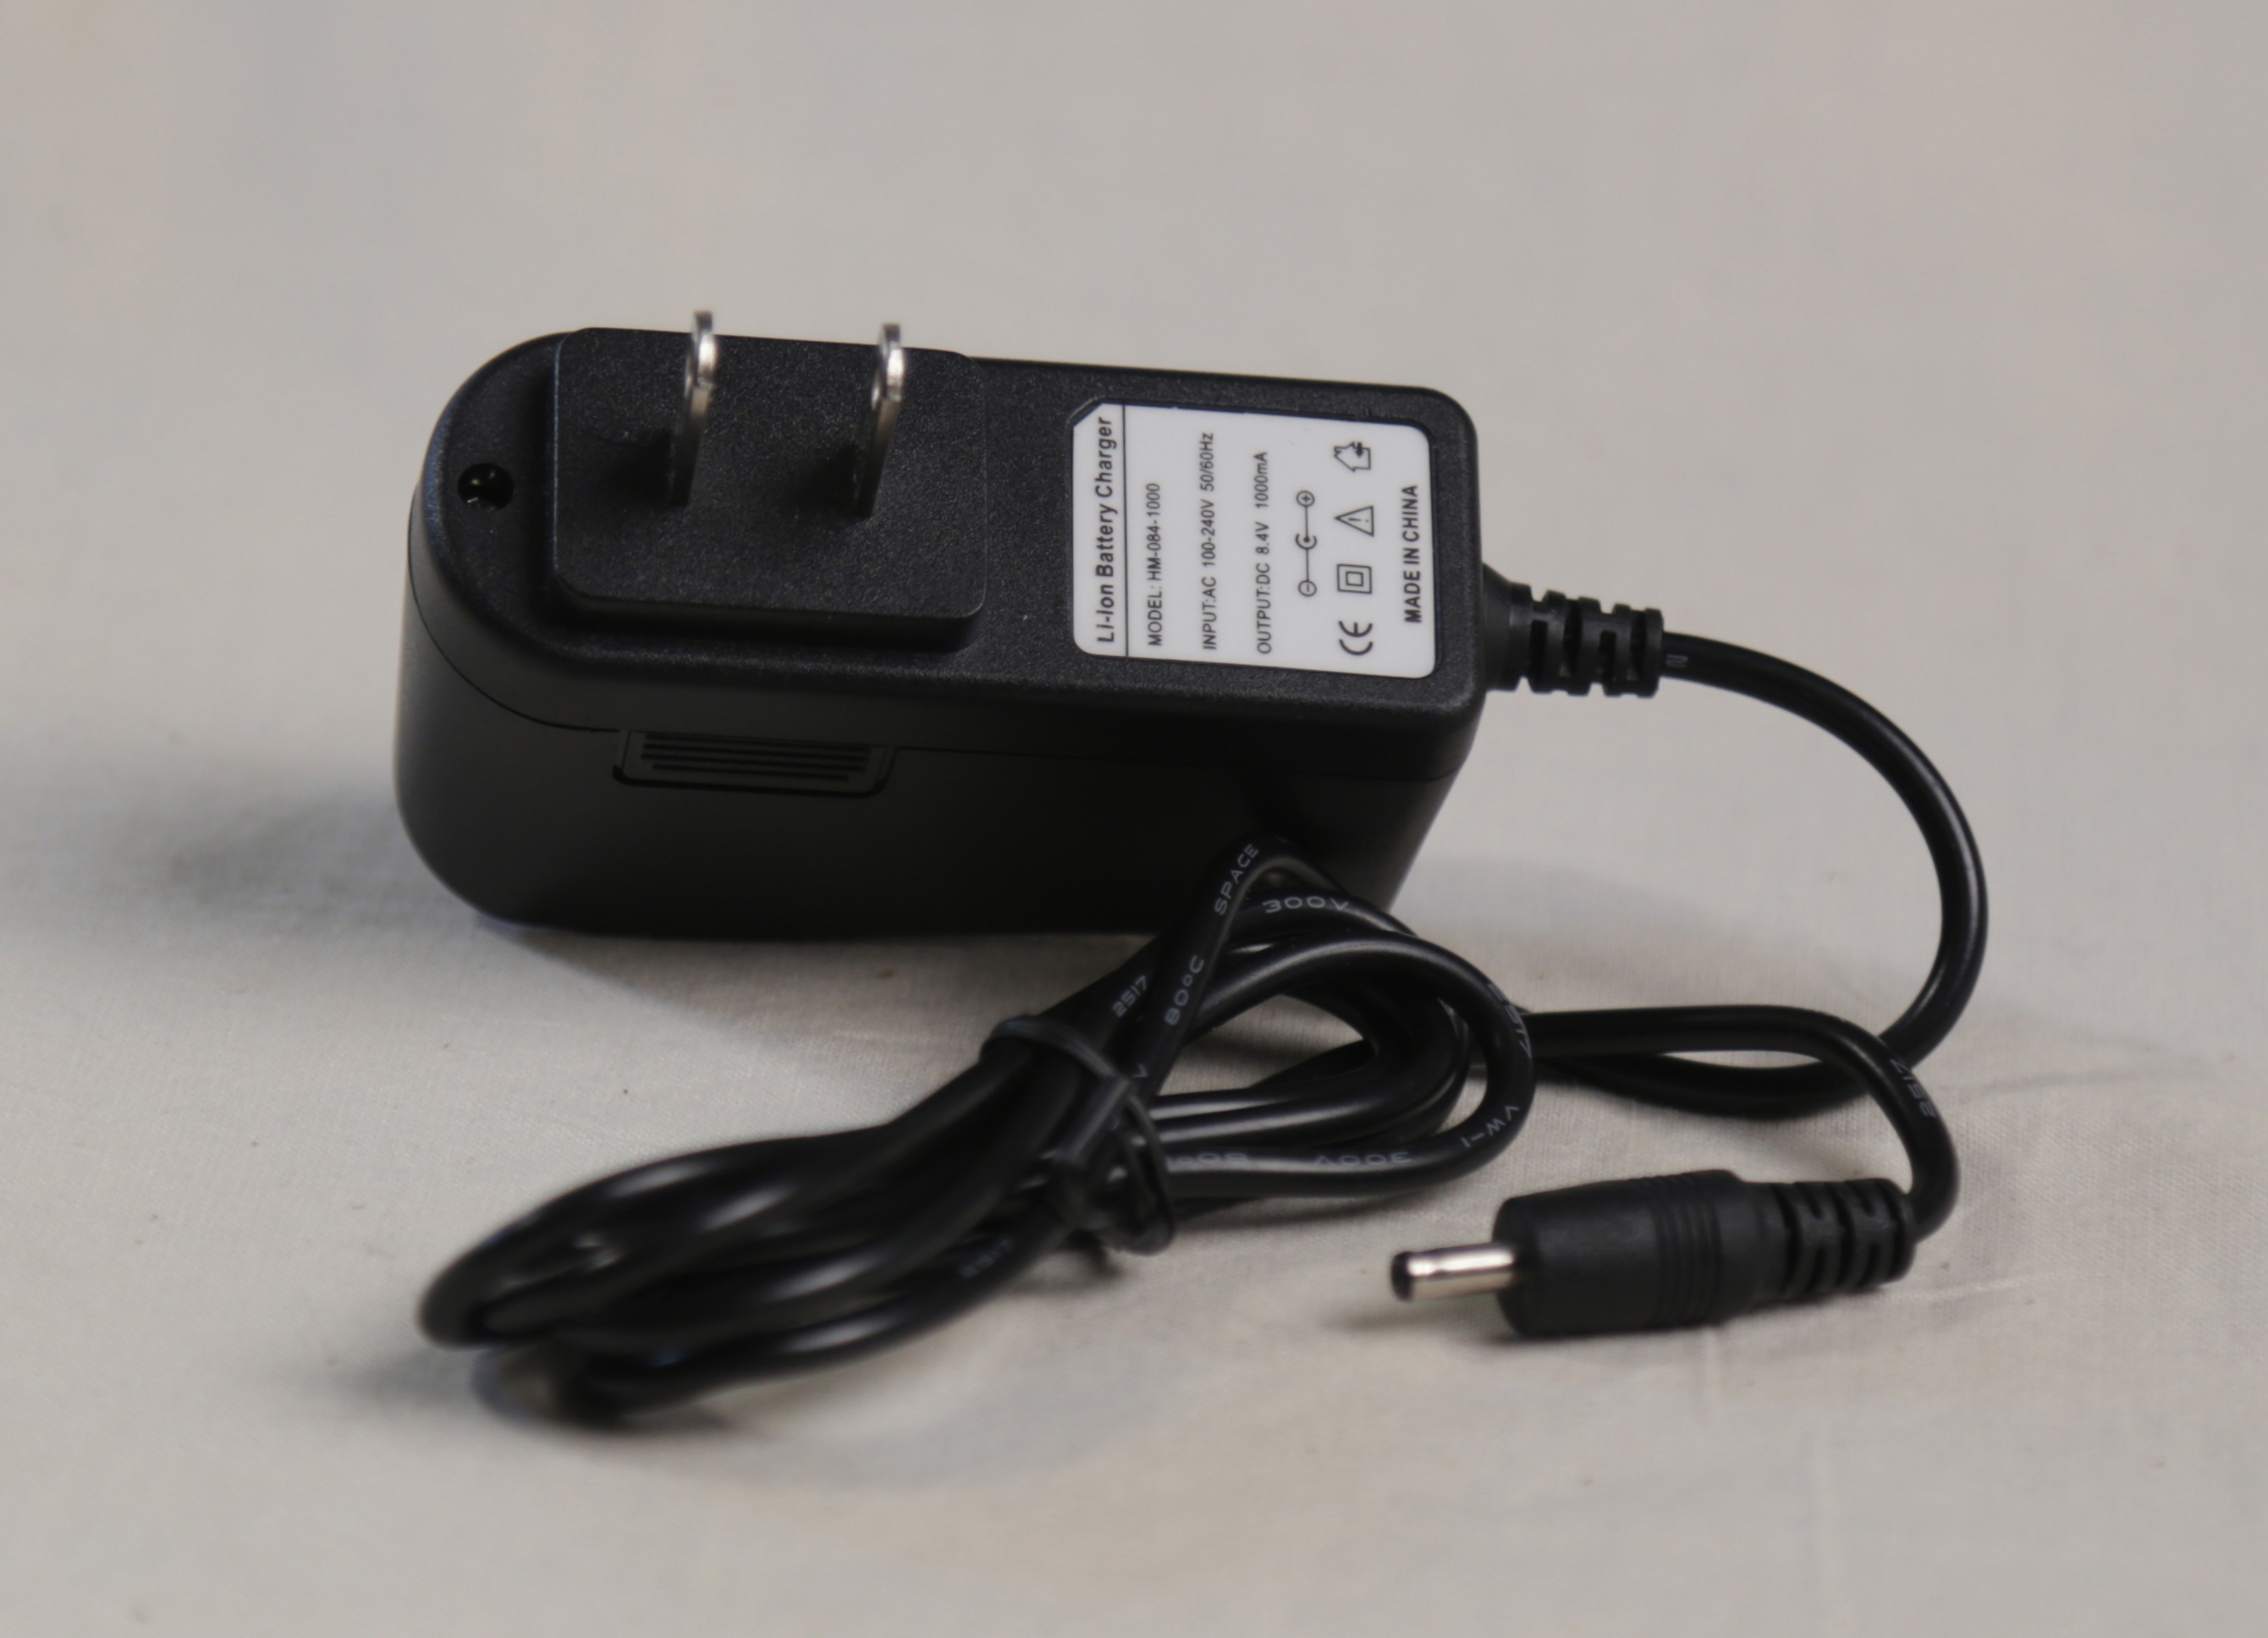 Thermal hoop 380 battery charger